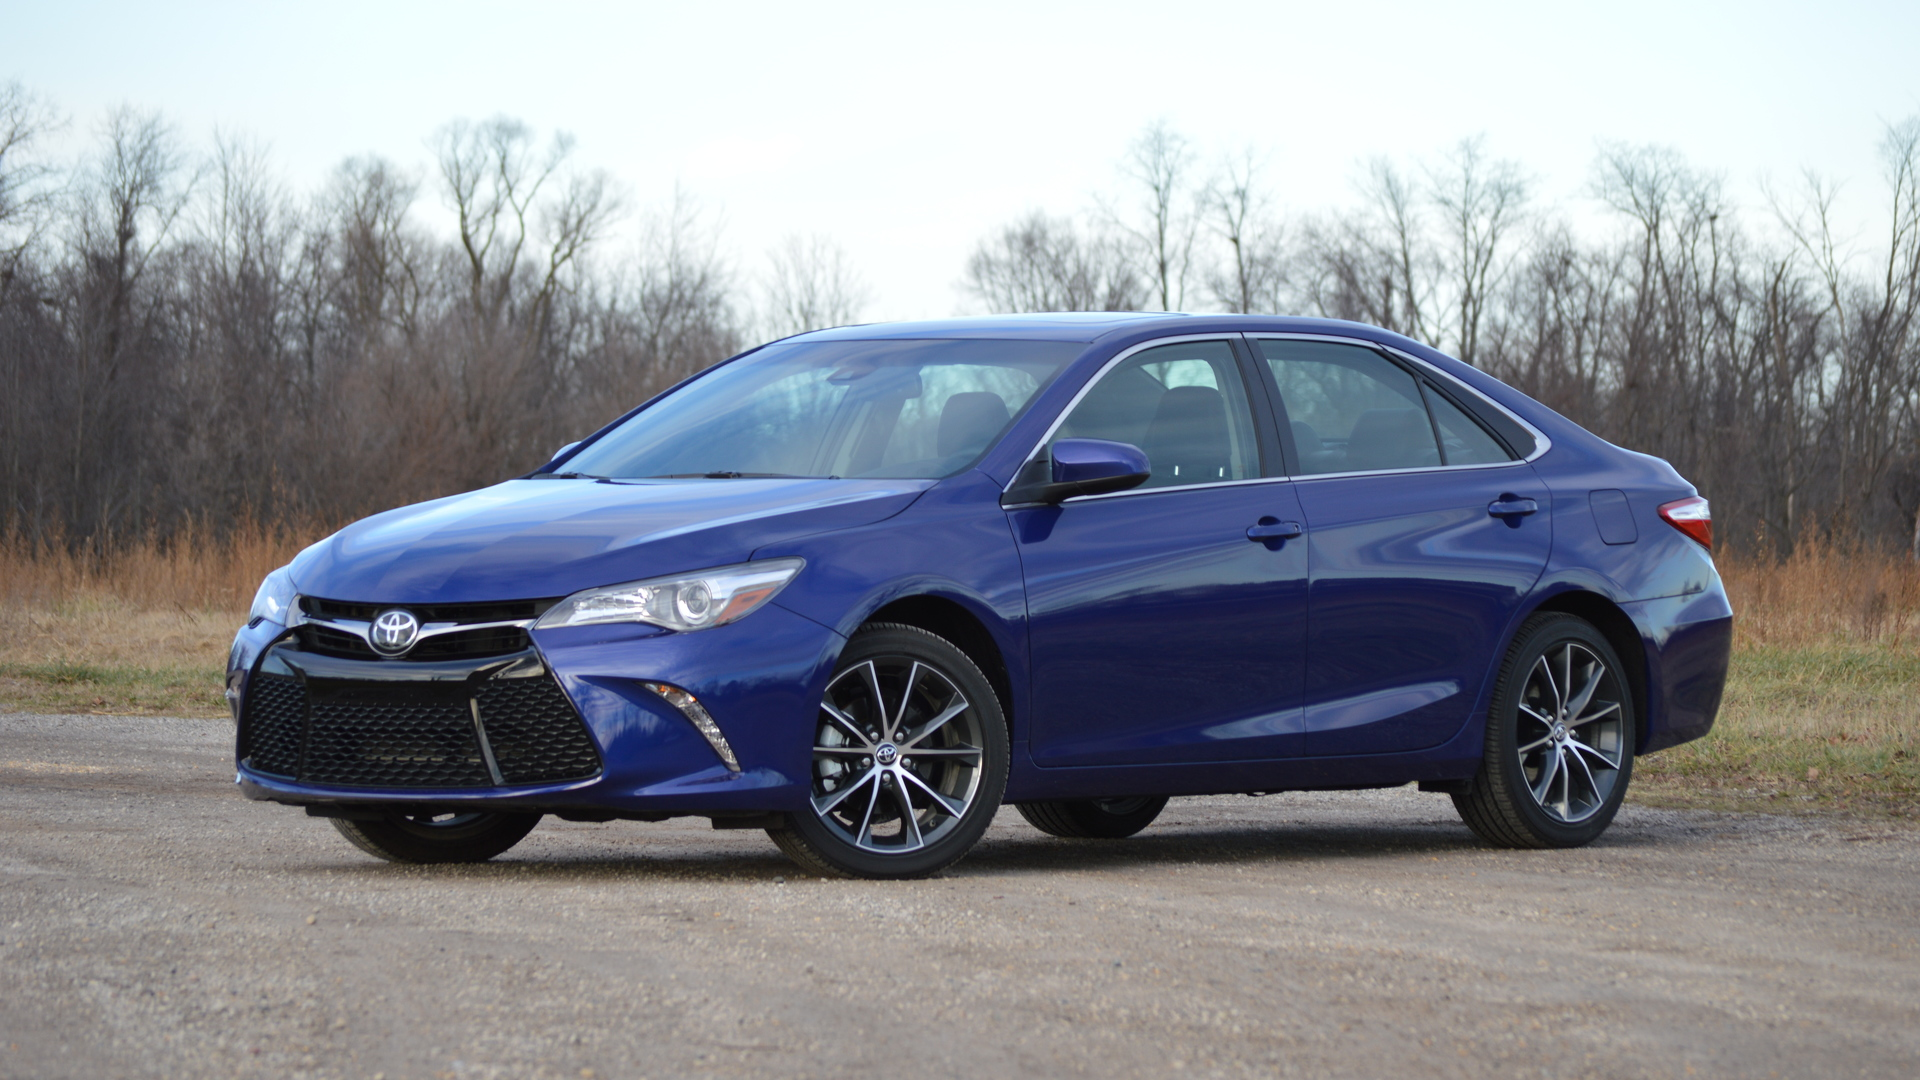 2016 Toyota Camry Xse >> Tested: 2016 Toyota Camry XSE